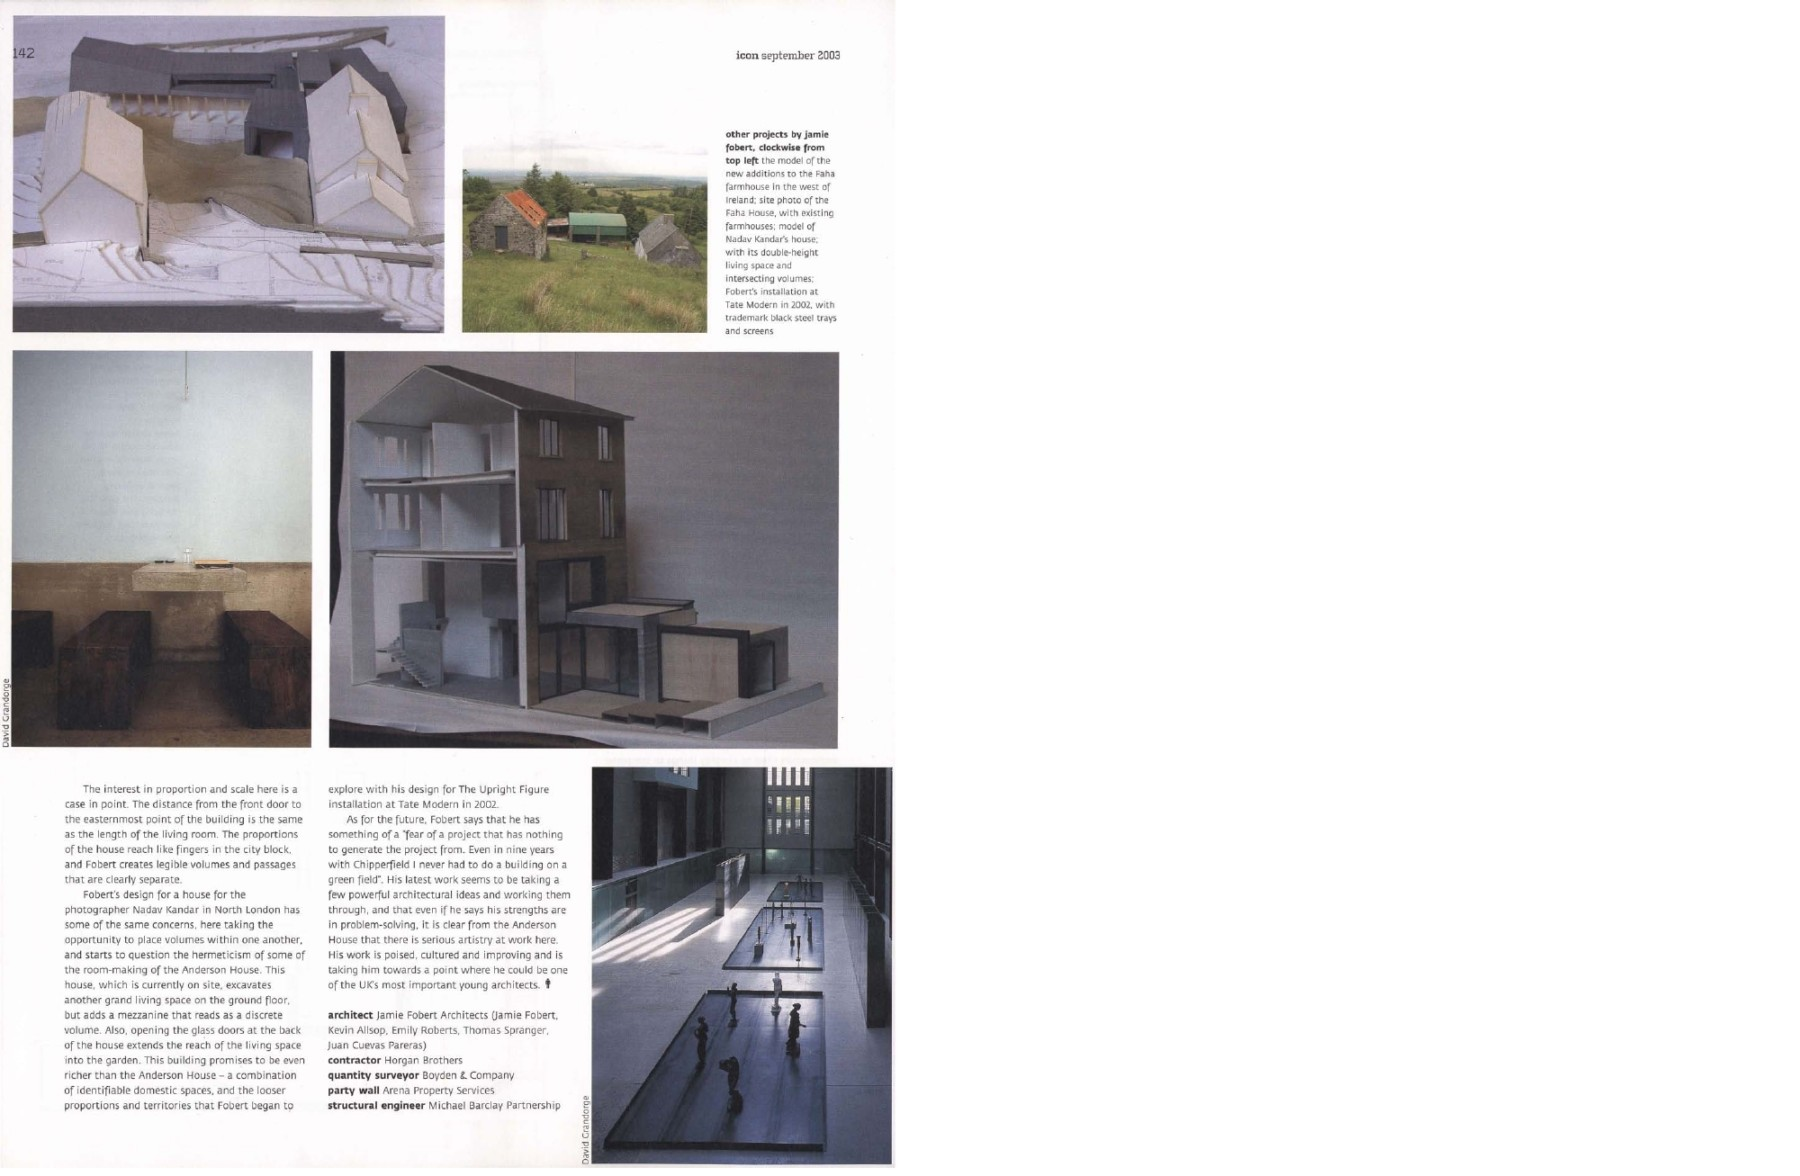 Jamie-Fobert-Architects-Anderson-House-icon-magazine-September-article-press (1)